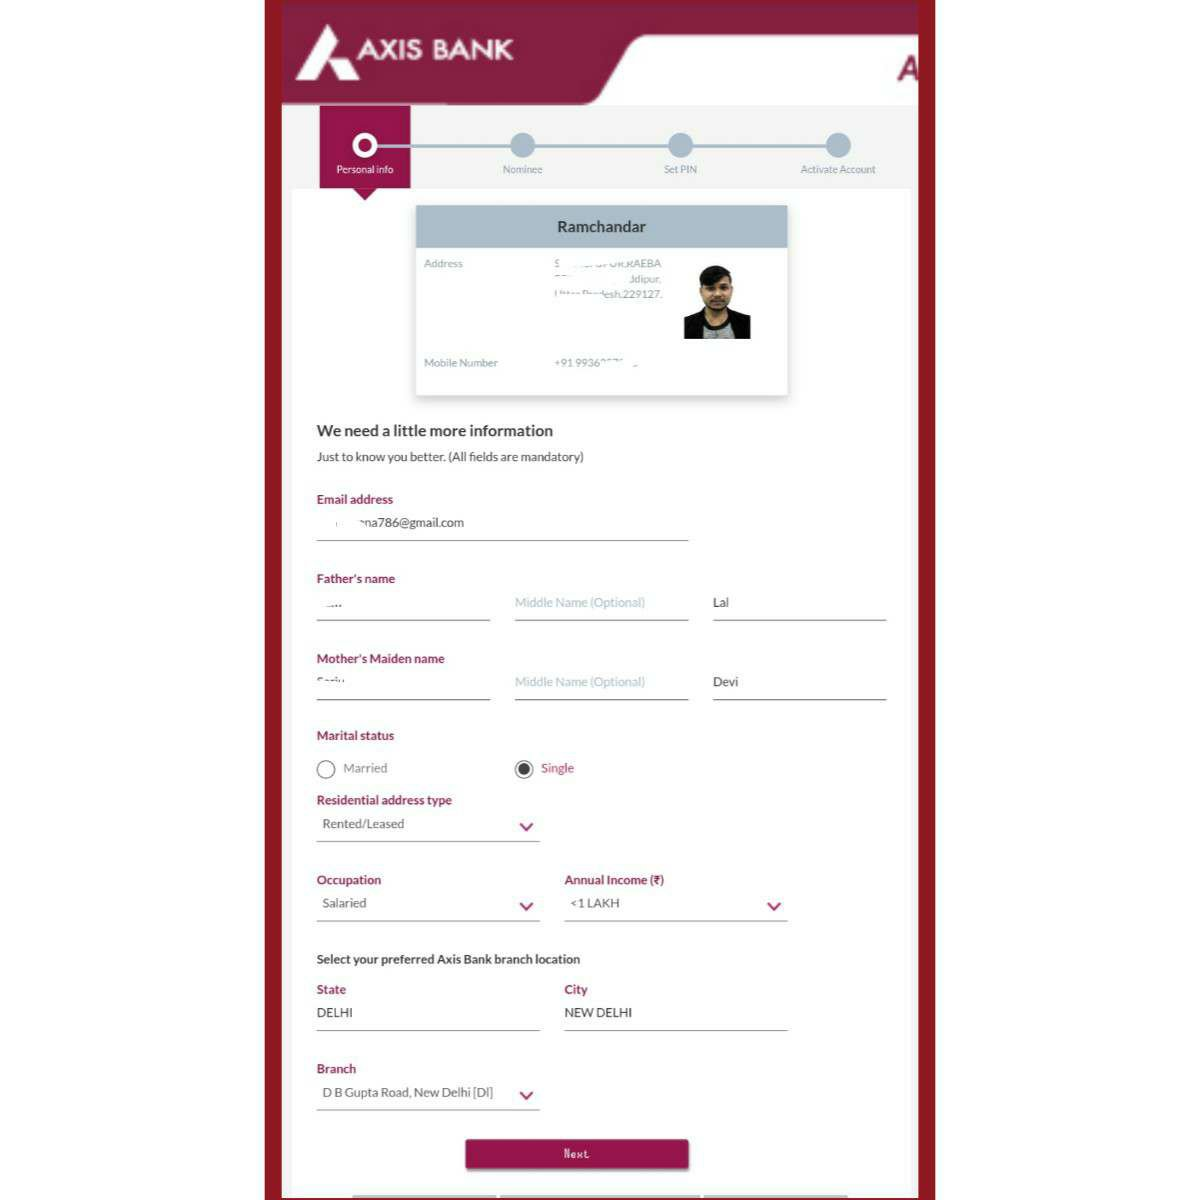 Axis Bank Asap Account Opening Online in Hindi